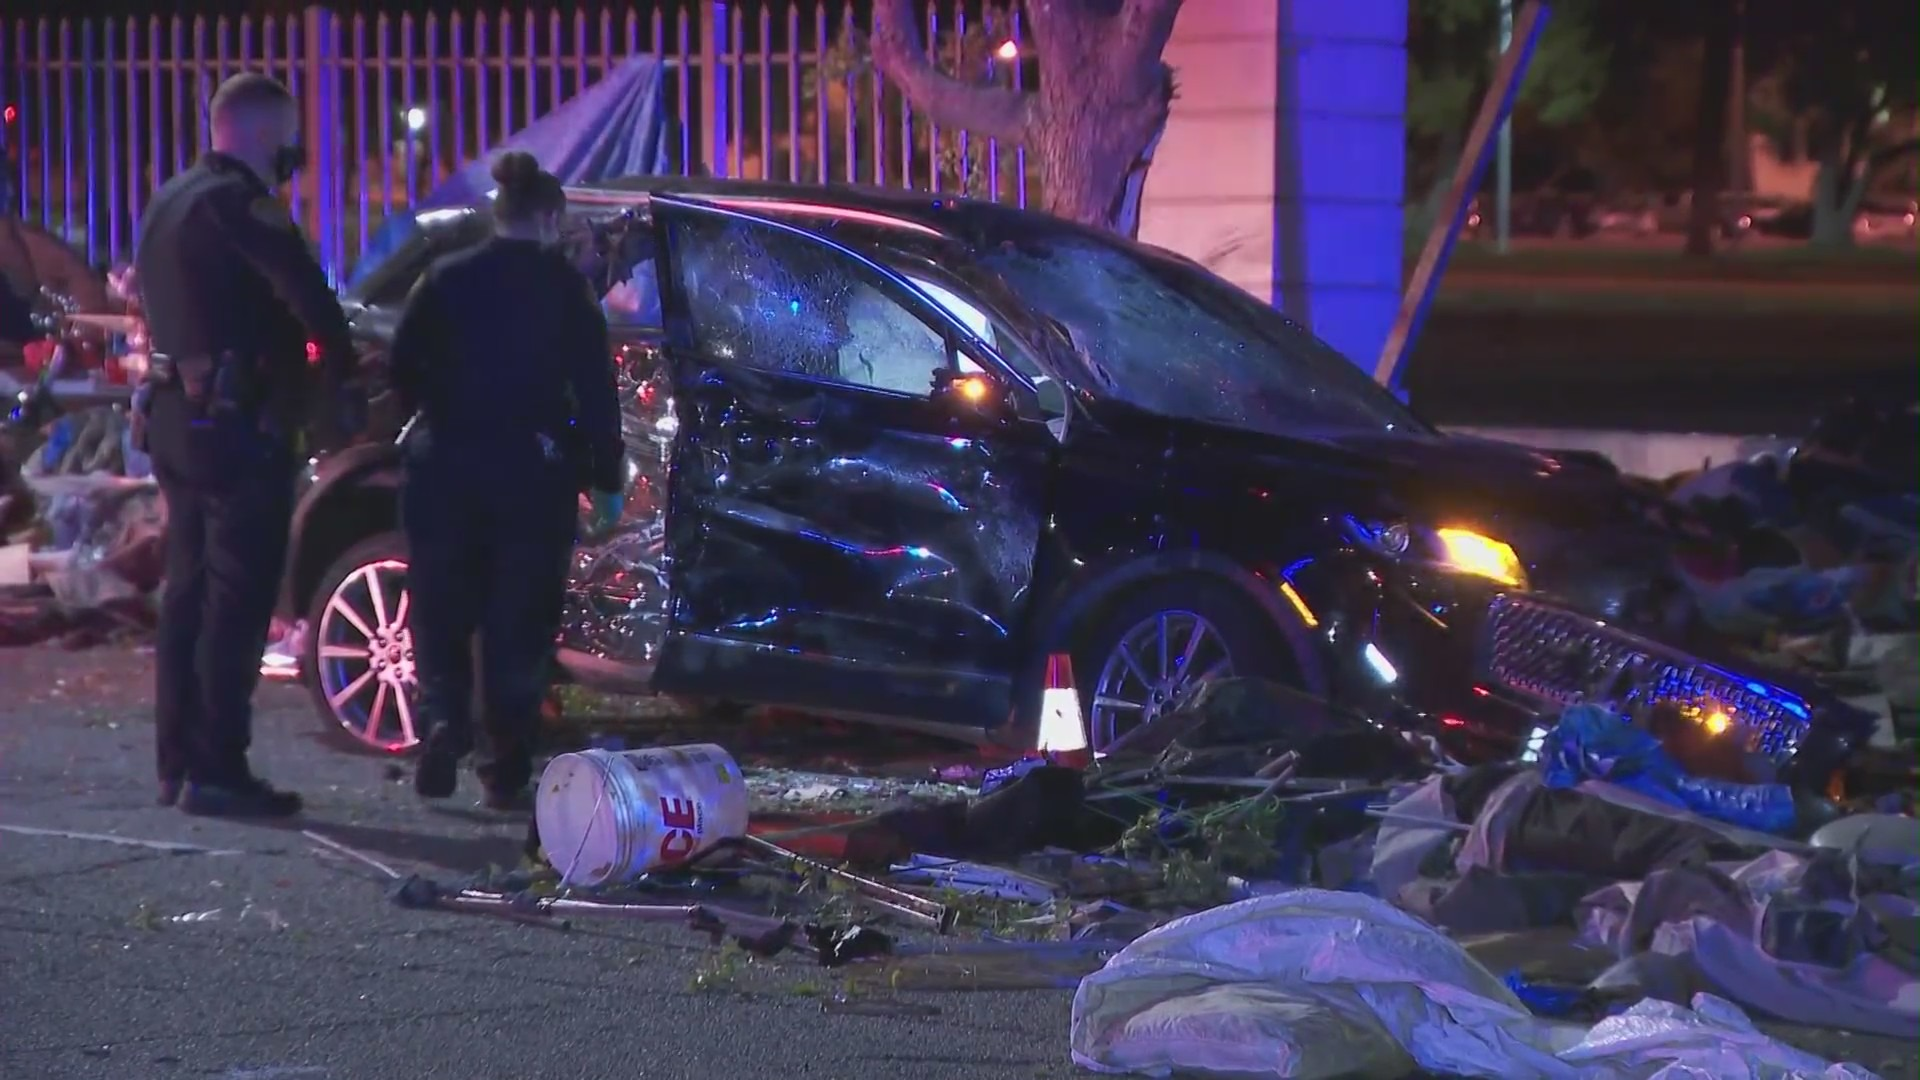 An SUV crashed into a homeless encampment in Brentwood on March 4, 4021. (KTLA)